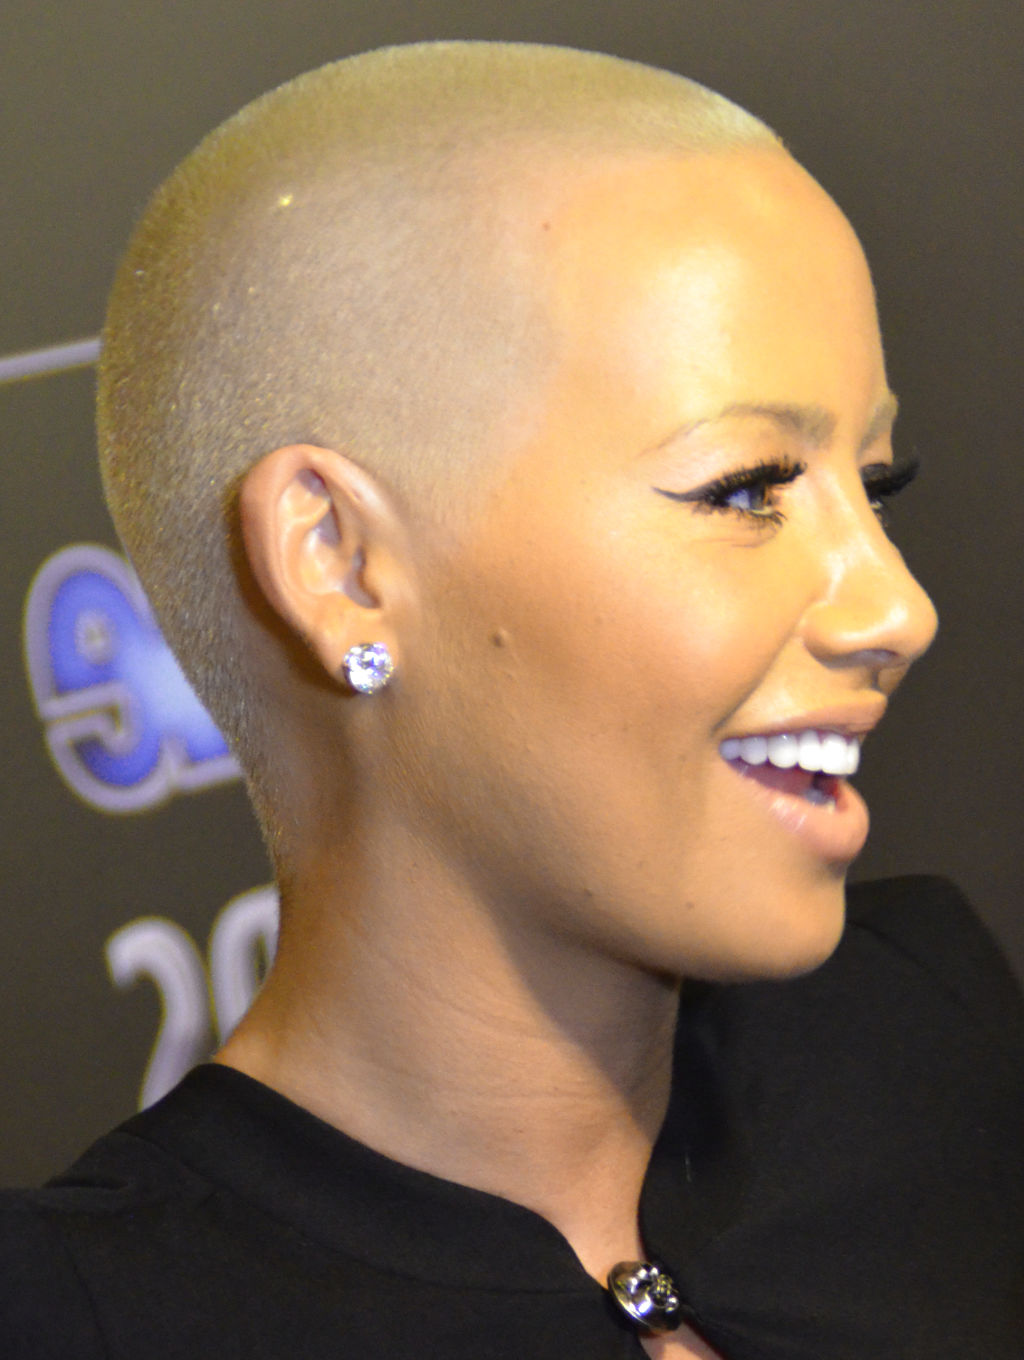 Phenomenal Amber Rose New Hairstyle My Real Style Short Hairstyles For Black Women Fulllsitofus